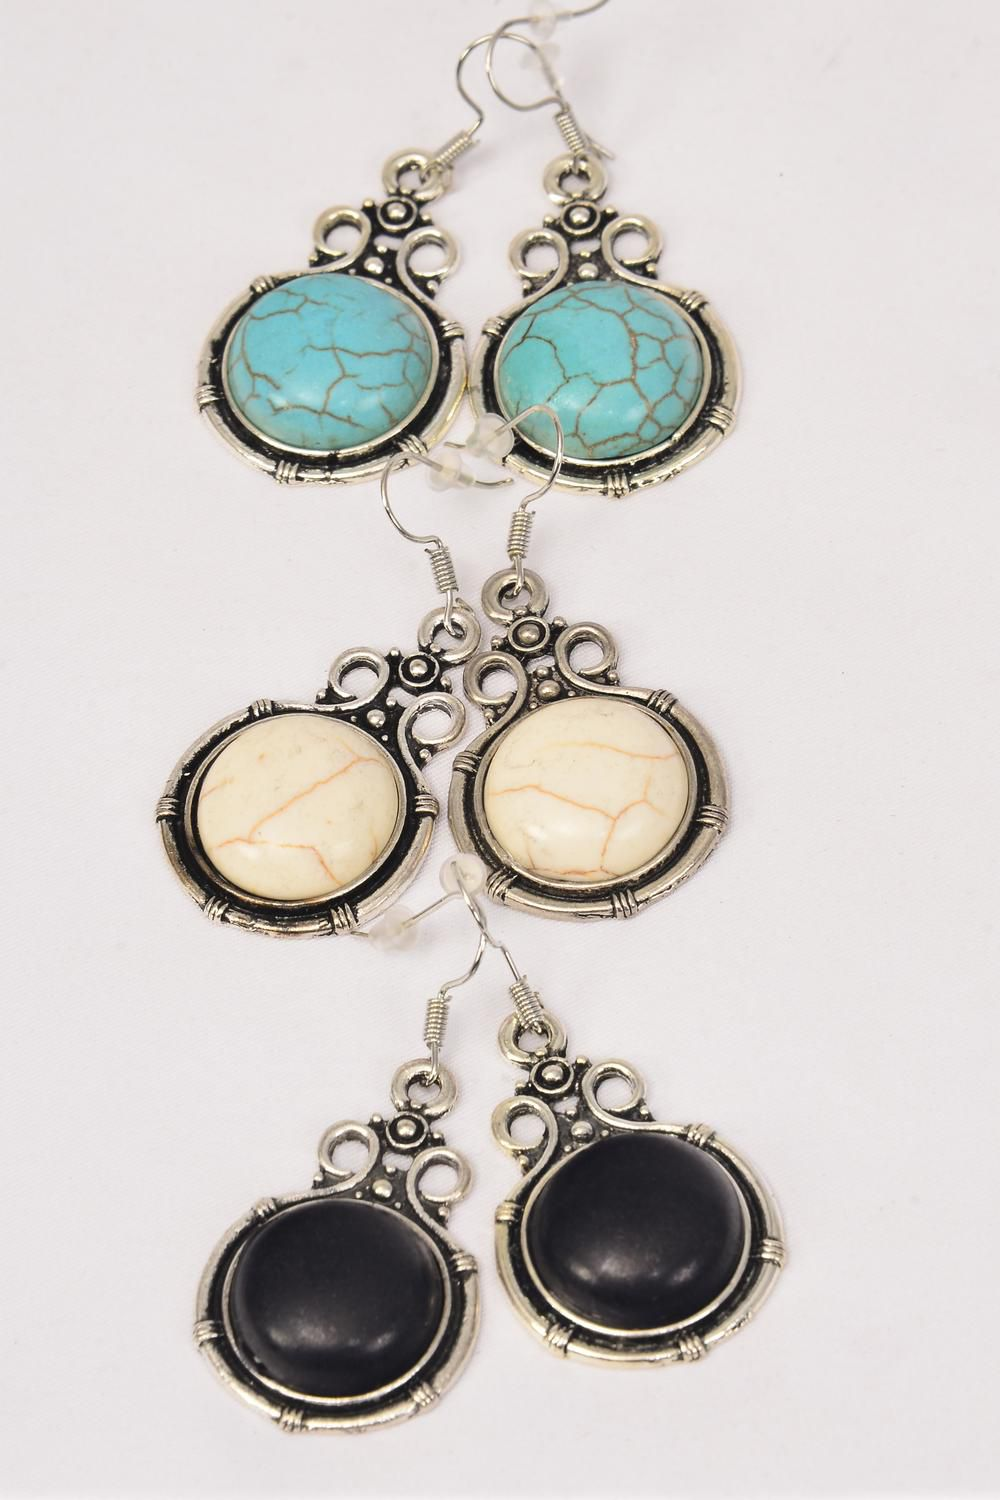 "Earrings Metal Antique Round Dangle Semiprecious Stone/DZ **Fish Hook** Size-1.5""x 1"" Wide,4 Black,4 Ivory,4 Turquoise Asst,Earring Card & OPP Bag & UPC Code -"